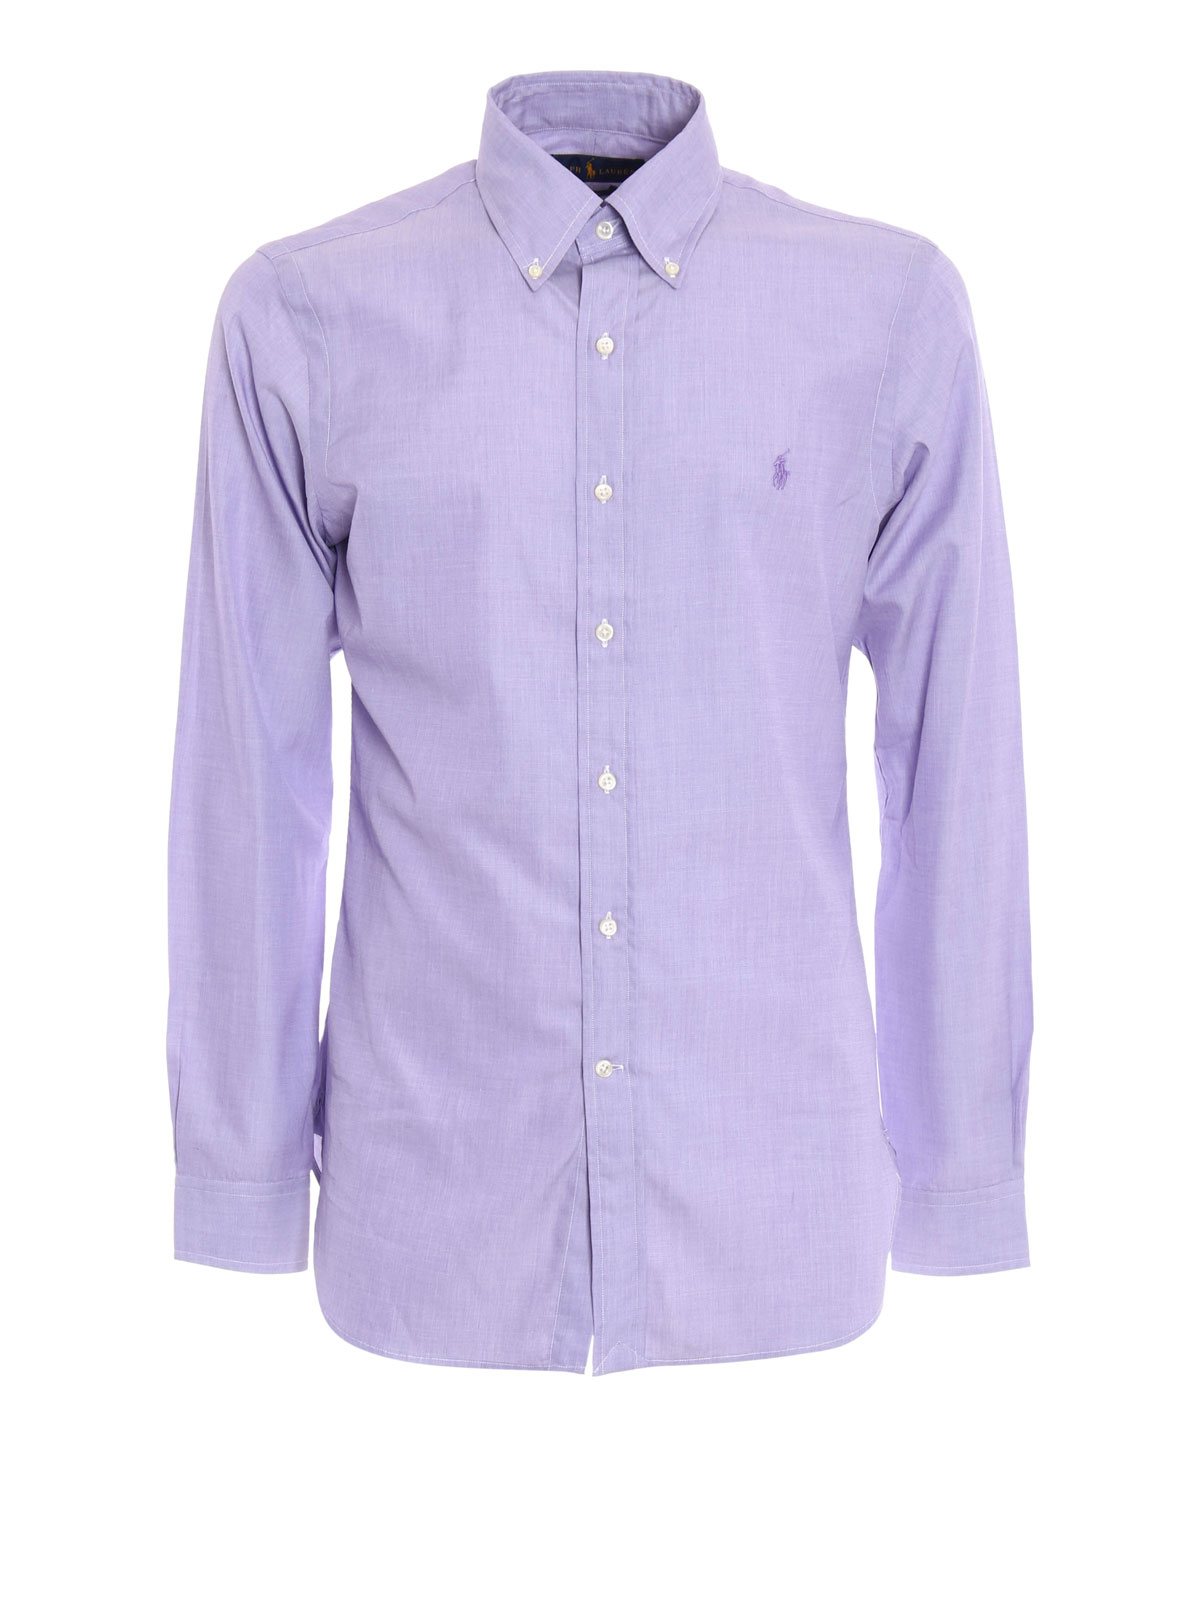 Cotton slim fit shirt with logo by ralph lauren shirts for Slim fit cotton shirts